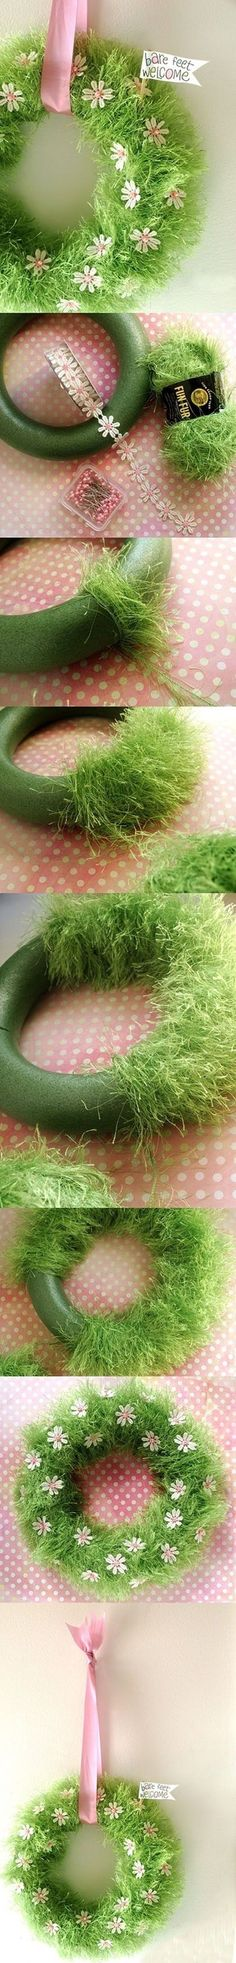 make it: Spring Baby Grass Wreath bare feet welcome! Perfect for everyday wreath, to welcome Spring, and for Easter.bare feet welcome! Perfect for everyday wreath, to welcome Spring, and for Easter. Diy Spring Wreath, Spring Crafts, Holiday Crafts, Holiday Wreaths, Cute Crafts, Crafts To Do, Diy Crafts, Wreath Crafts, Diy Wreath